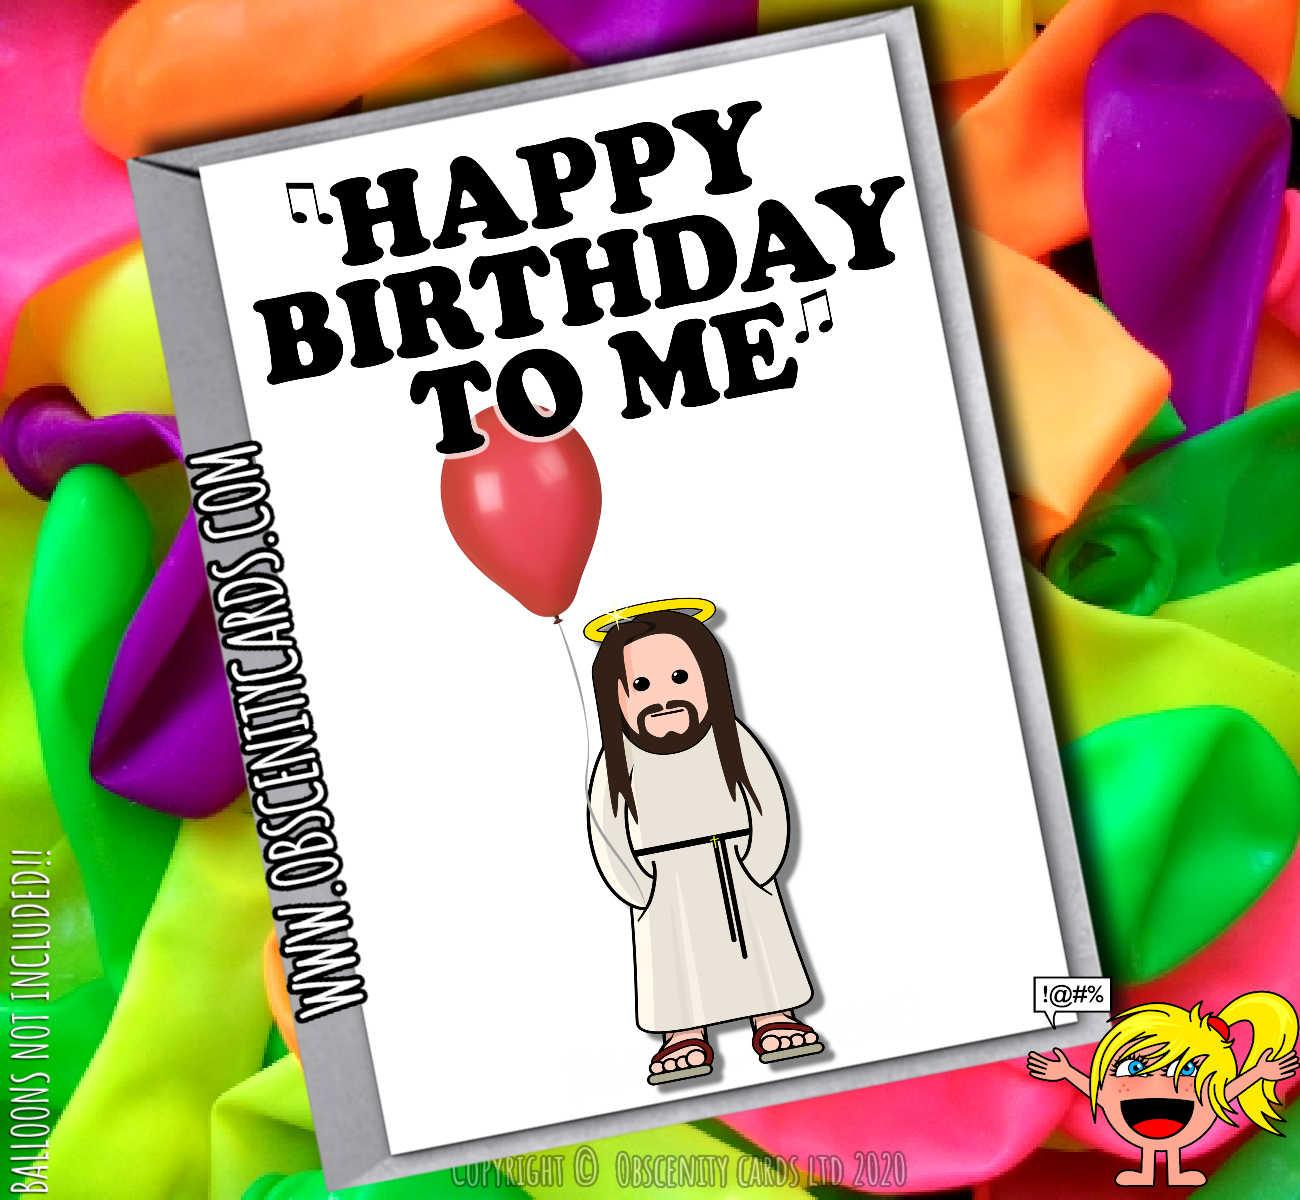 HAPPY BIRTHDAY TO ME FUNNY JESUS CHRISTMAS CARD